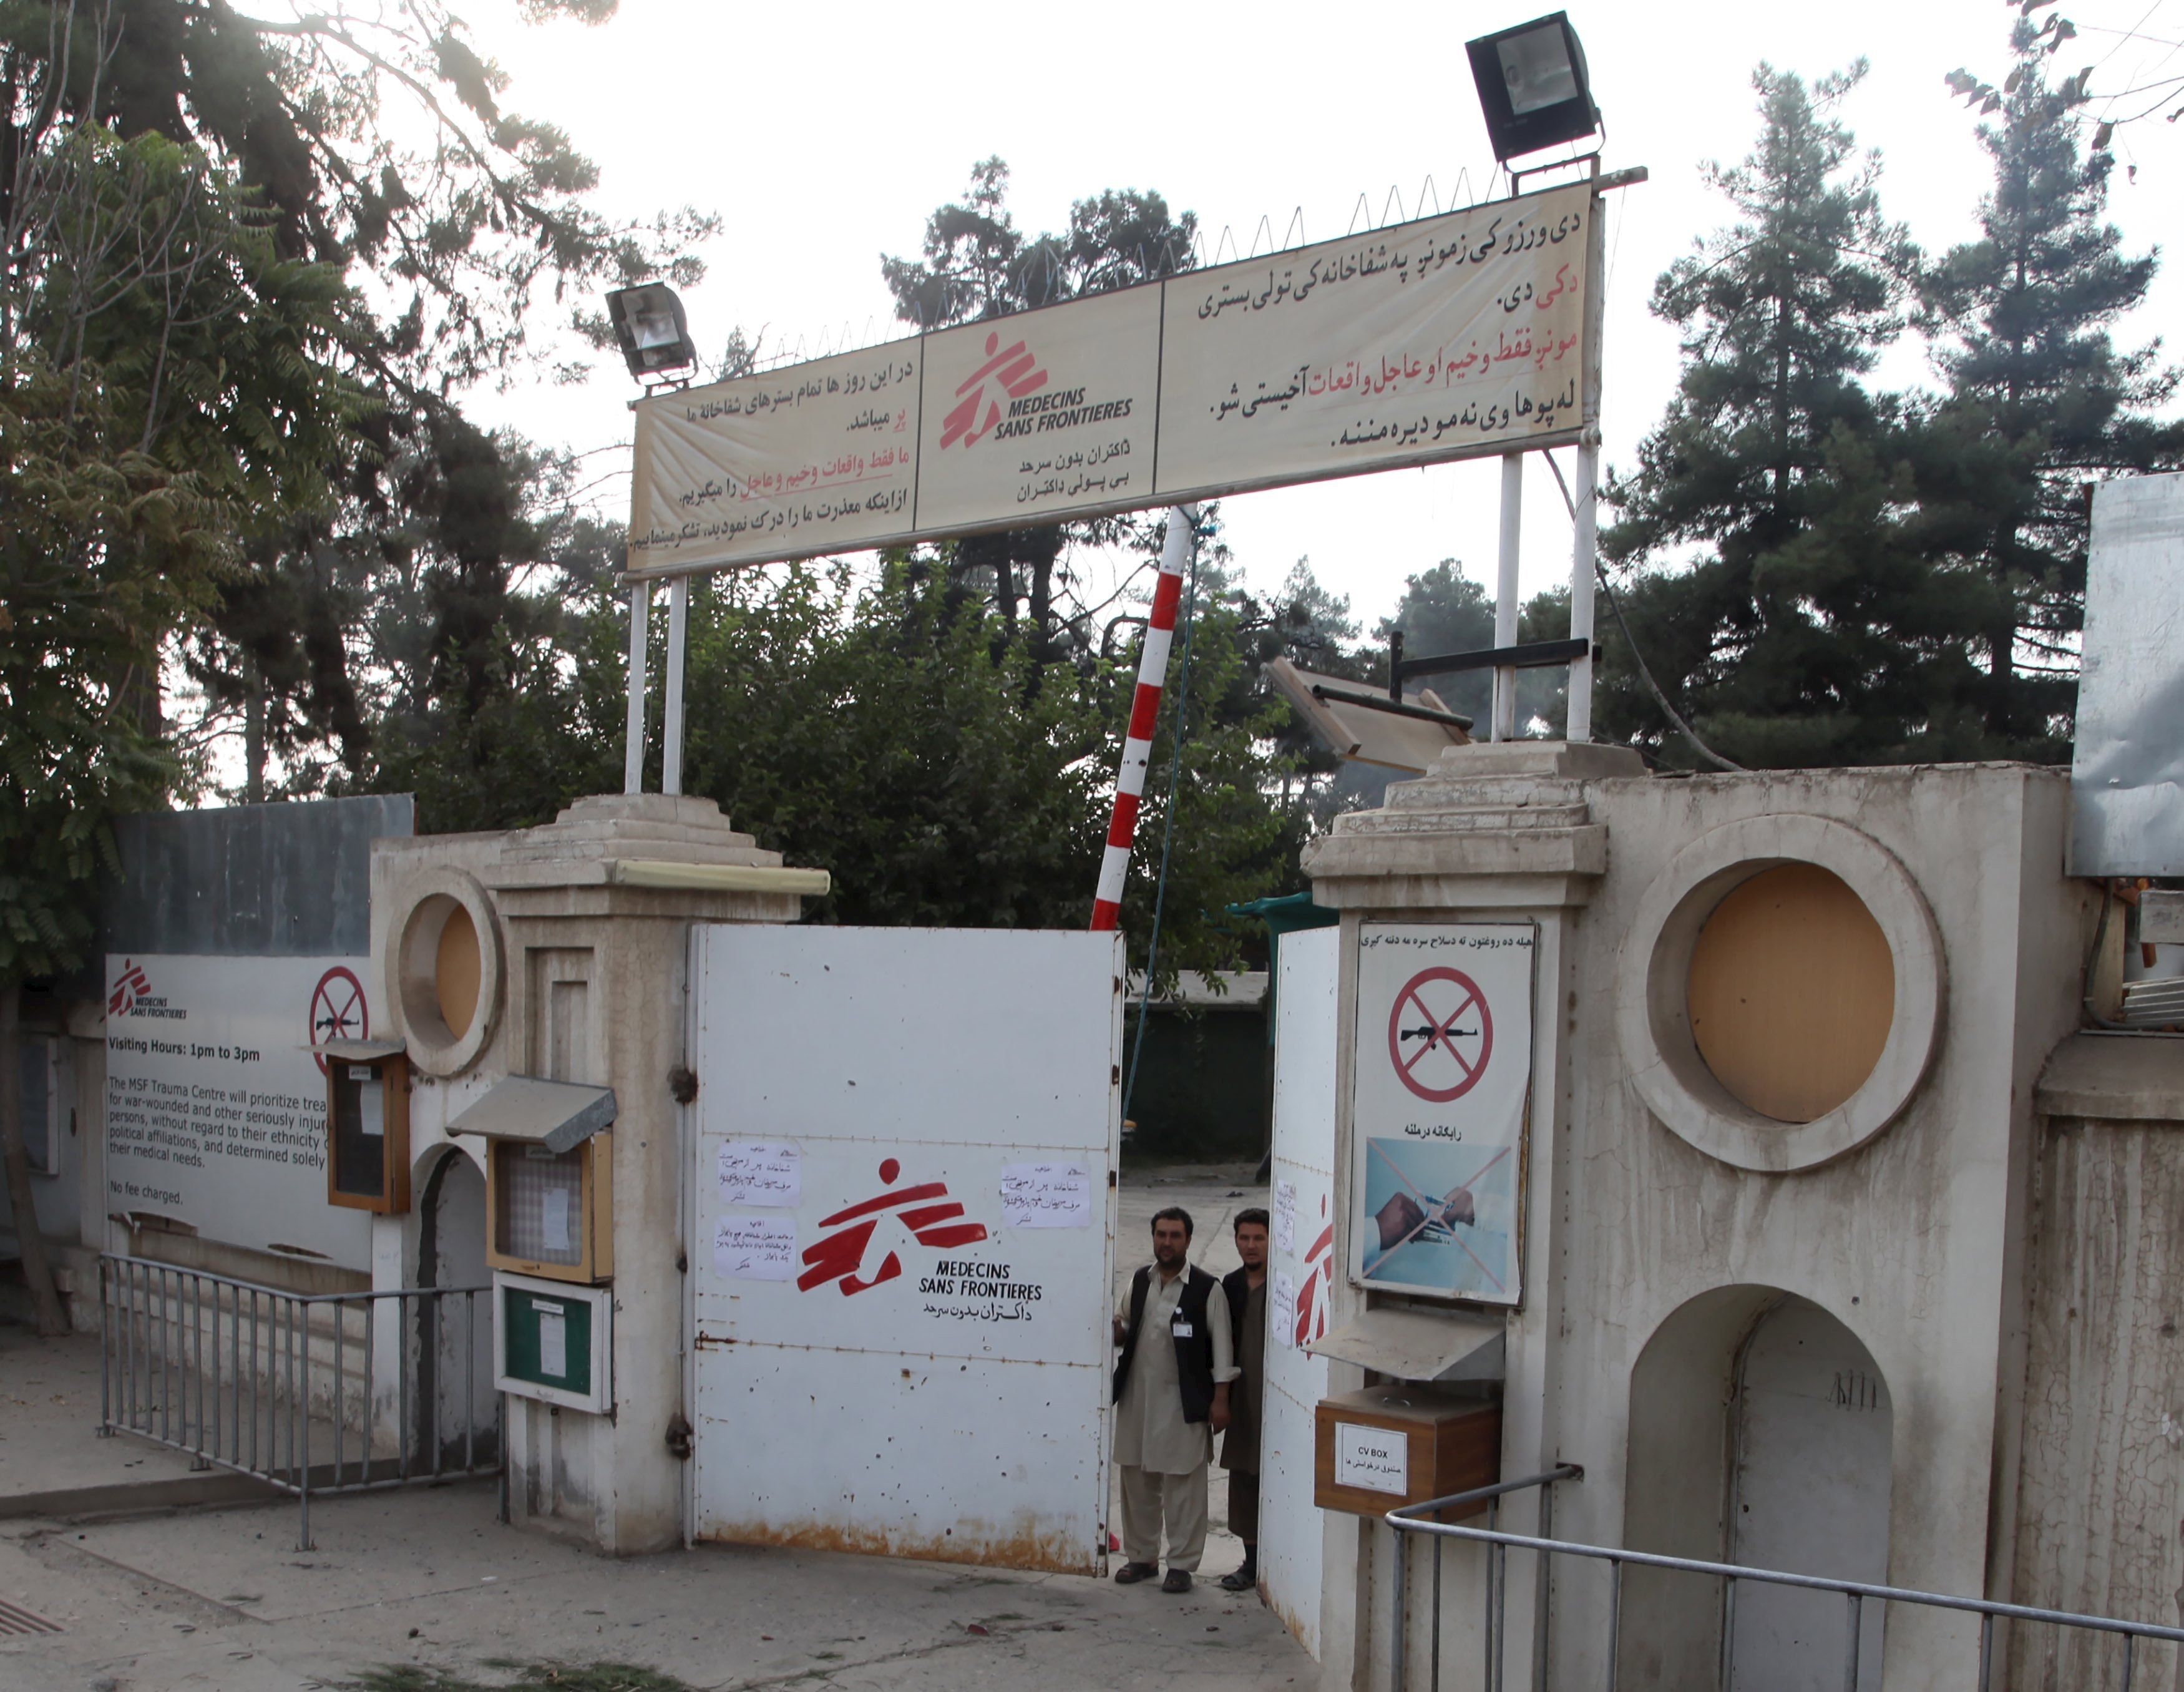 Afghan guards stand at the gate of Medecins Sans Frontieres (MSF) hospital after an air strike in the city of Kunduz, Afghanistan on Oct. 3, 2015.